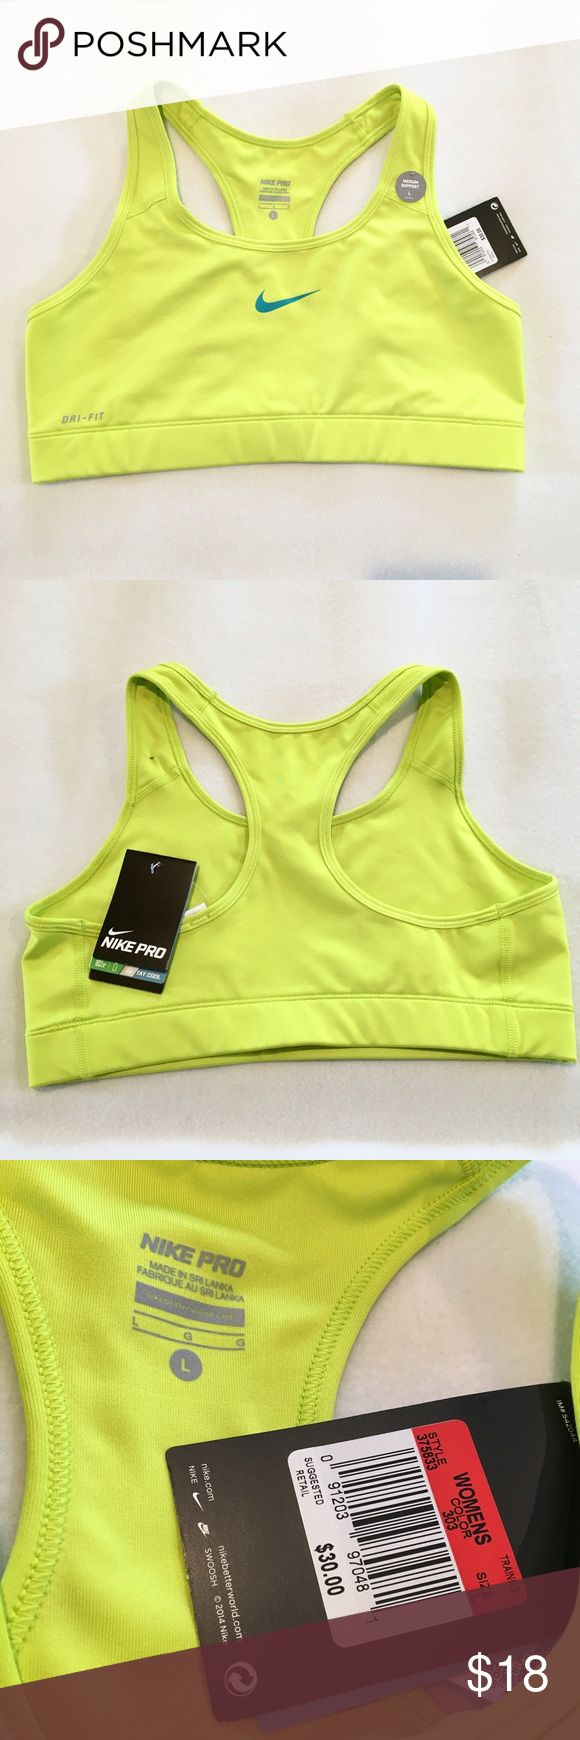 NWT Nike Pro Neon Yellow Sports Bra Neon yellow sports bra with blue Nike check by Nike Pro.  Size Large.  New with tags! Nike Intimates & Sleepwear Bras